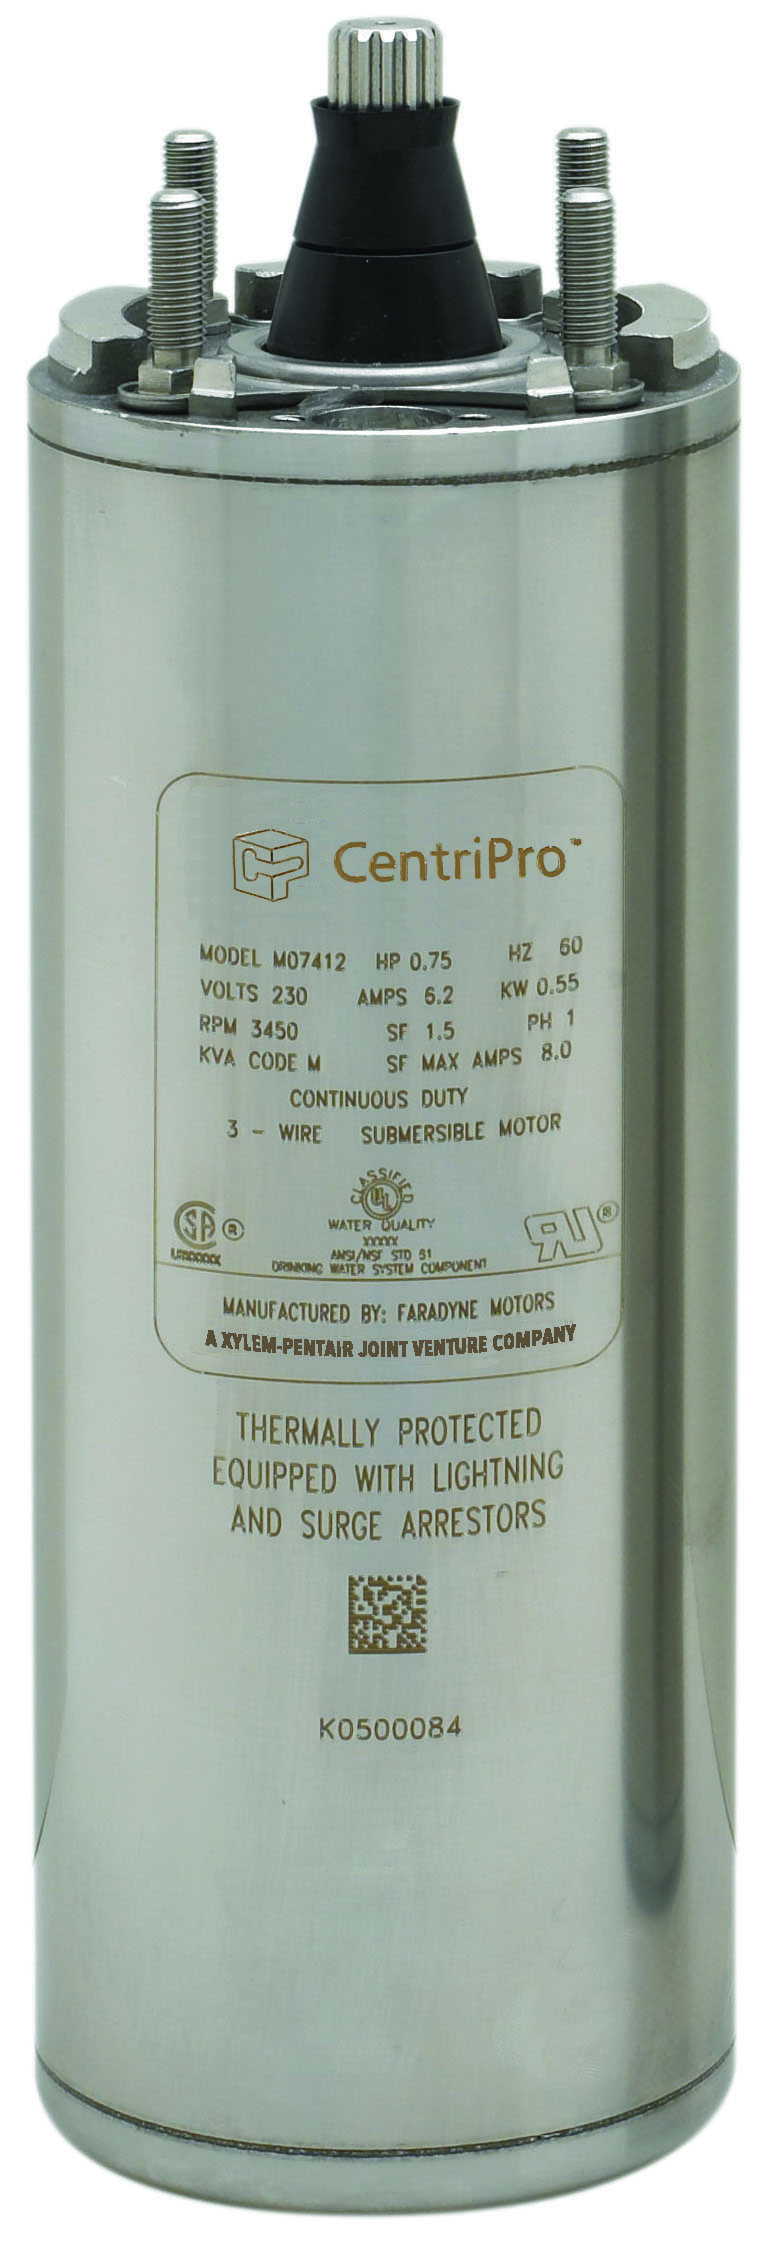 CentriPro 4″ Submersible Motors